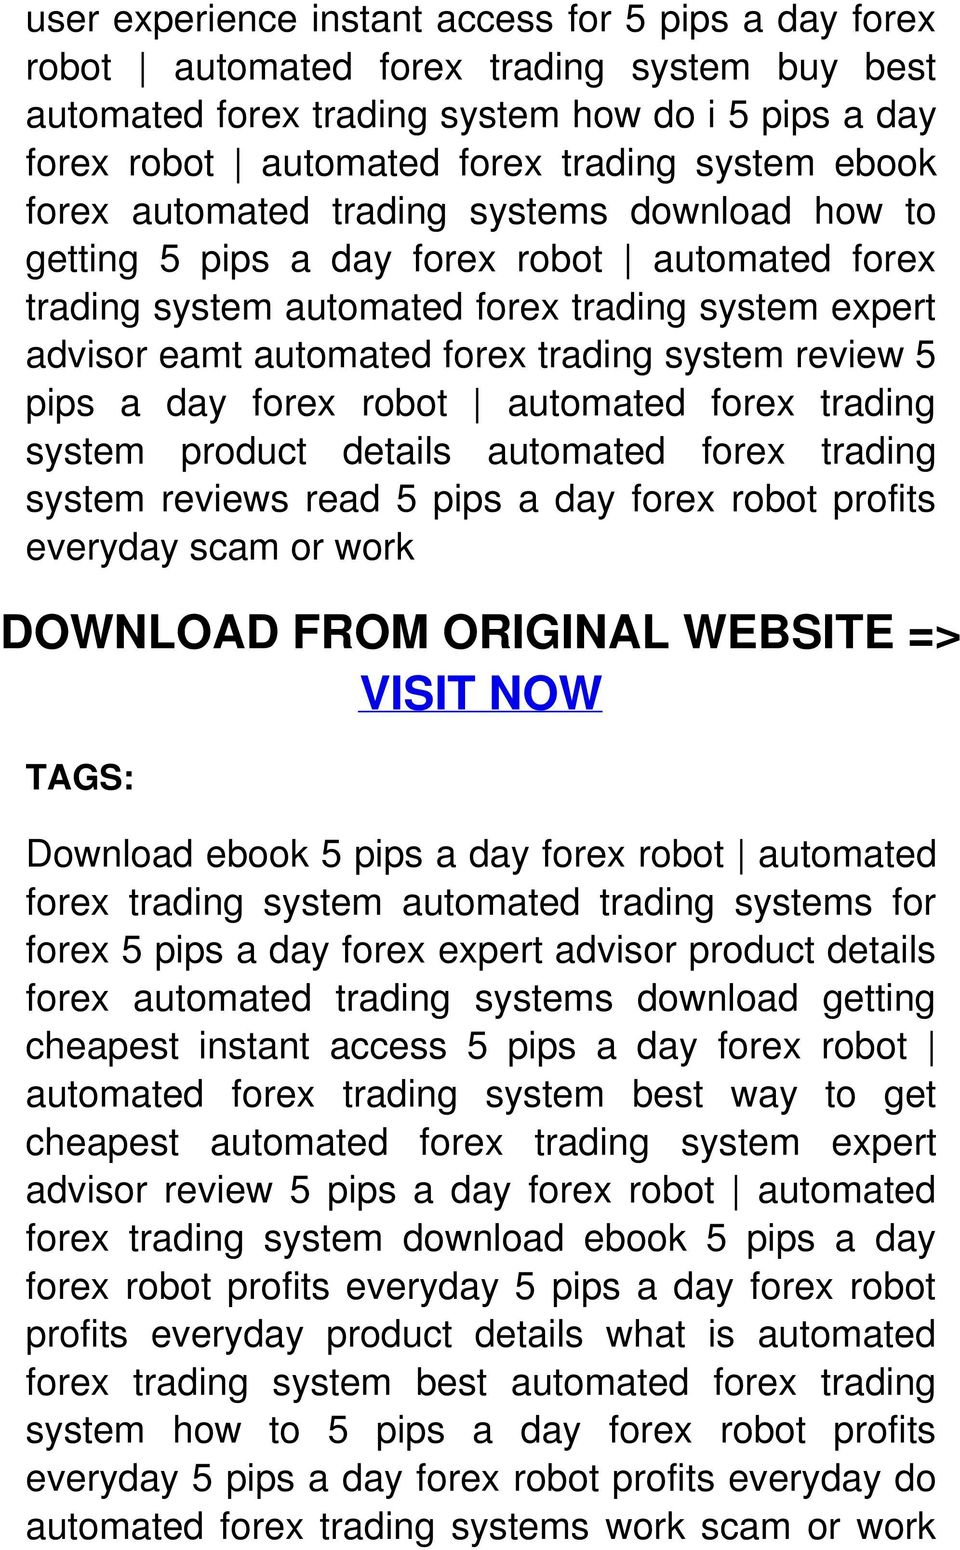 review 5 pips a day forex robot automated forex trading system product details automated forex trading system reviews read 5 pips a day forex robot profits everyday scam or work DOWNLOAD FROM